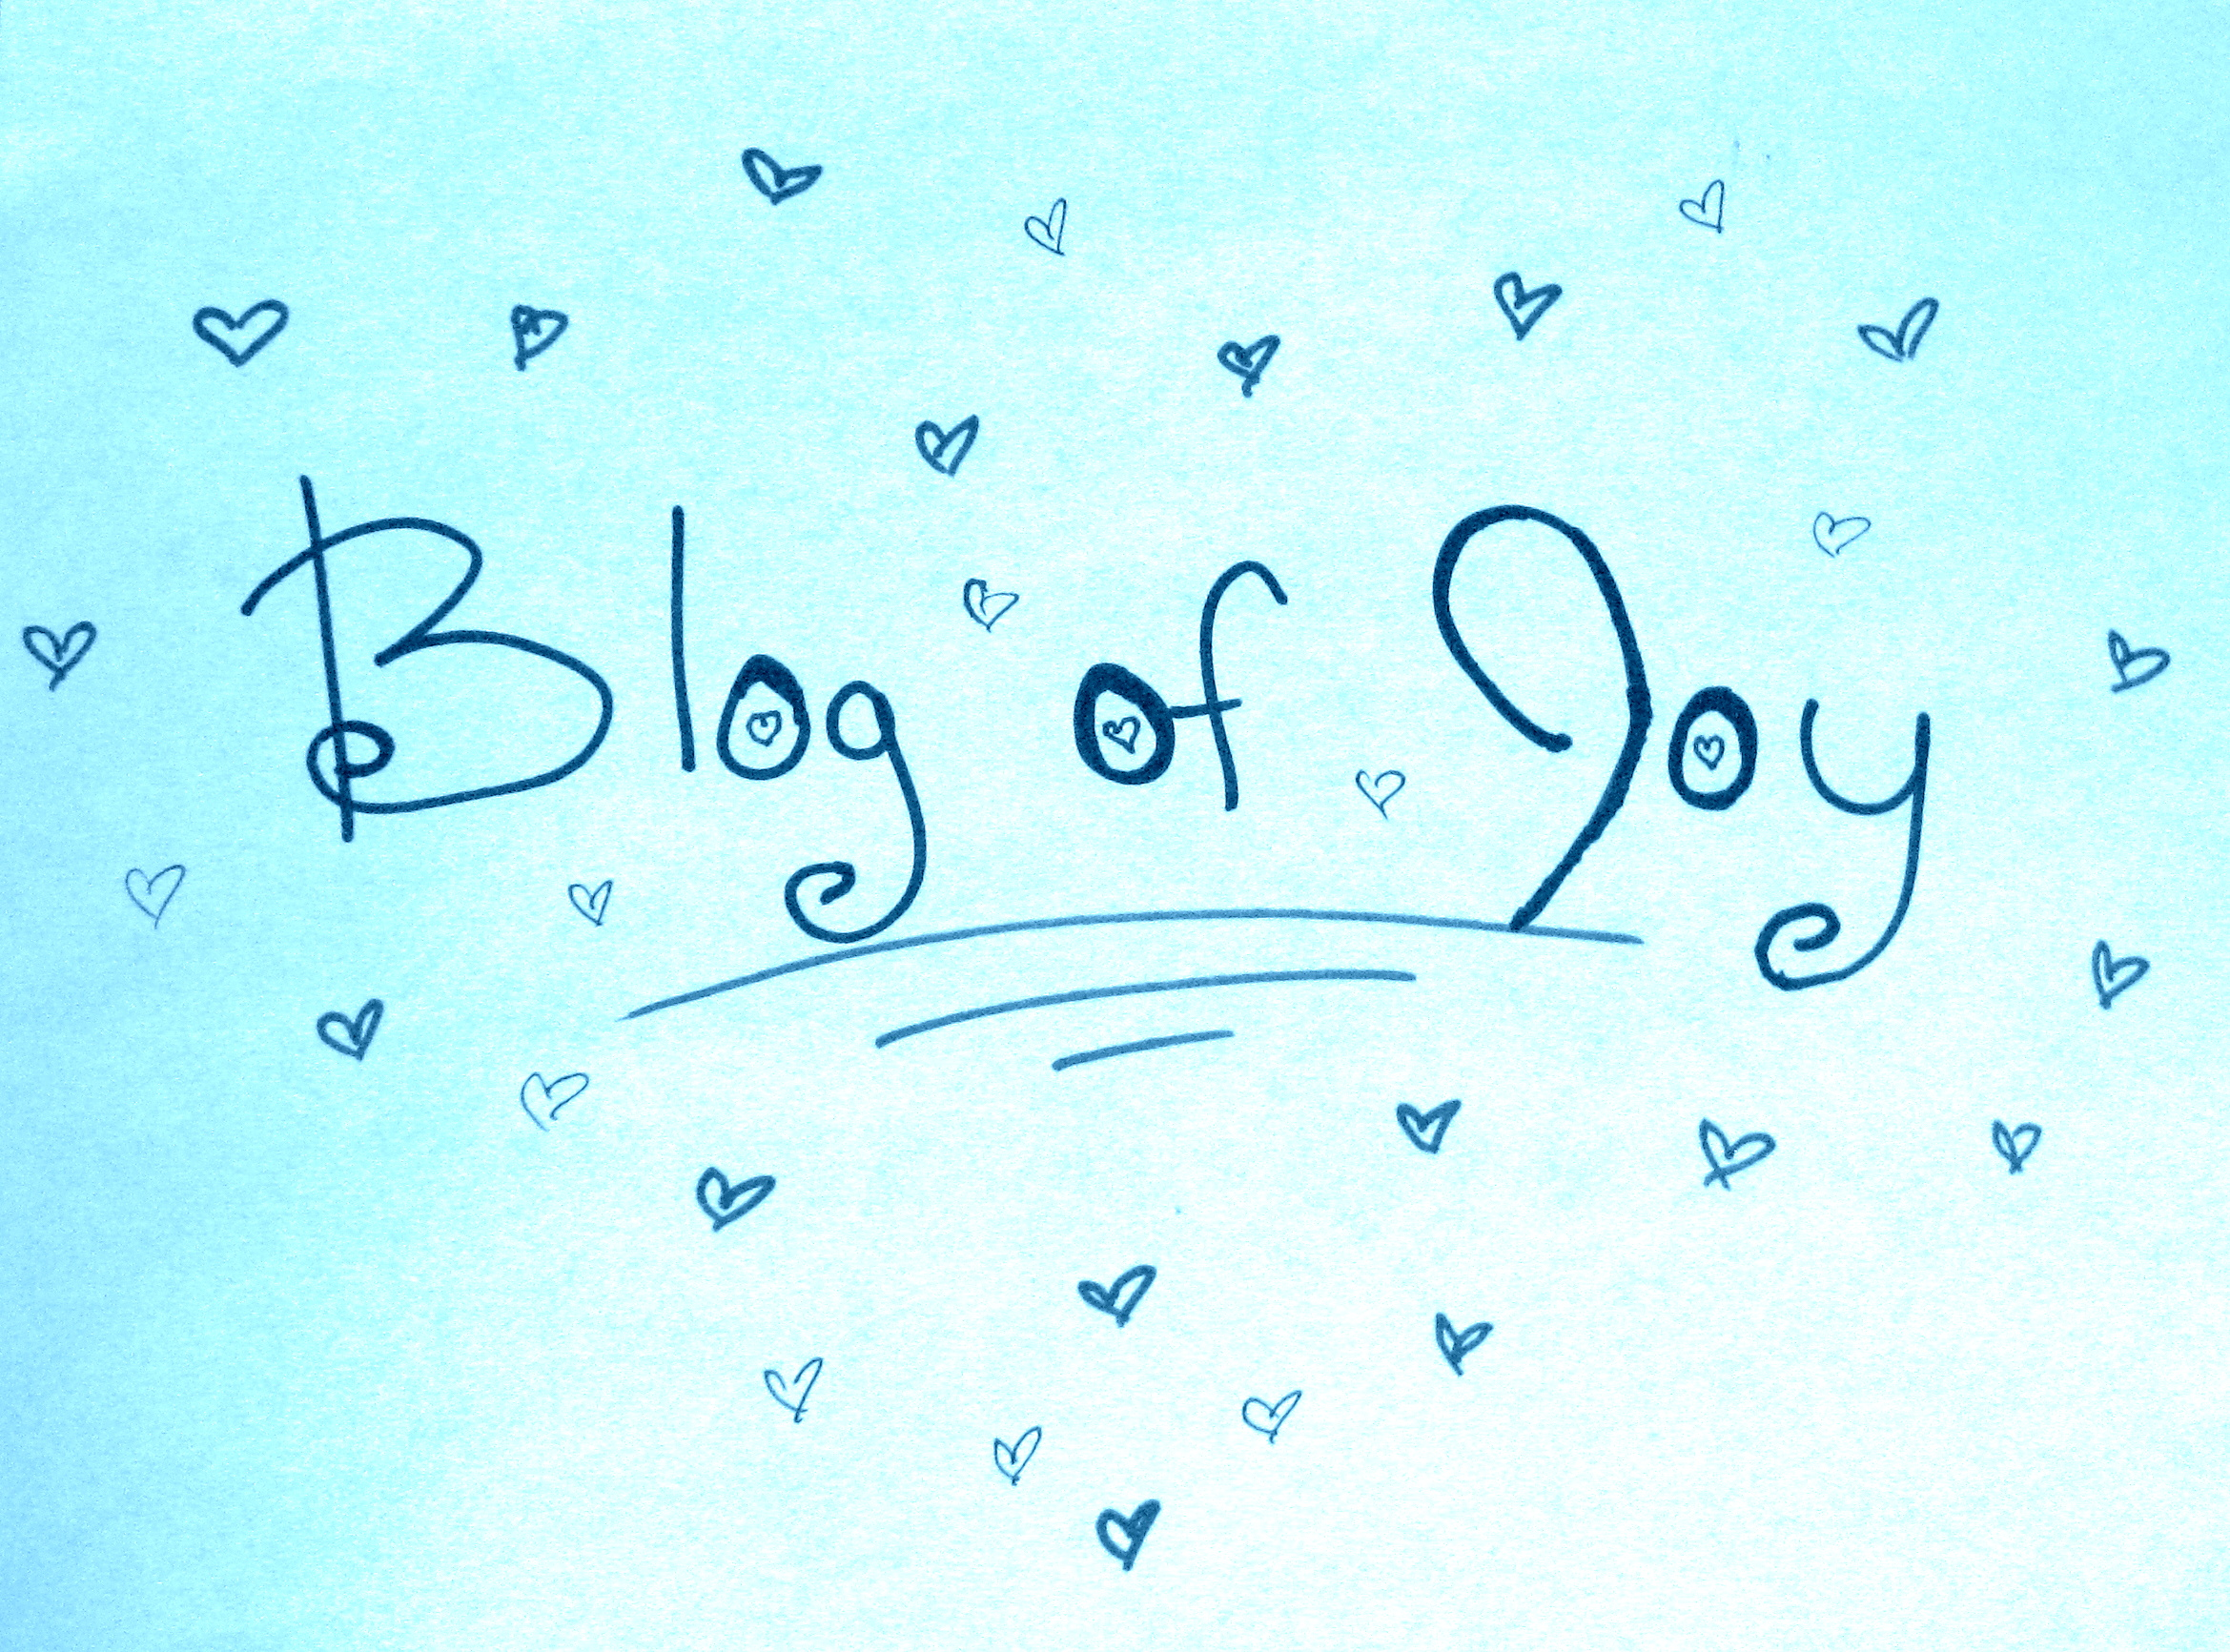 Blog of Joy